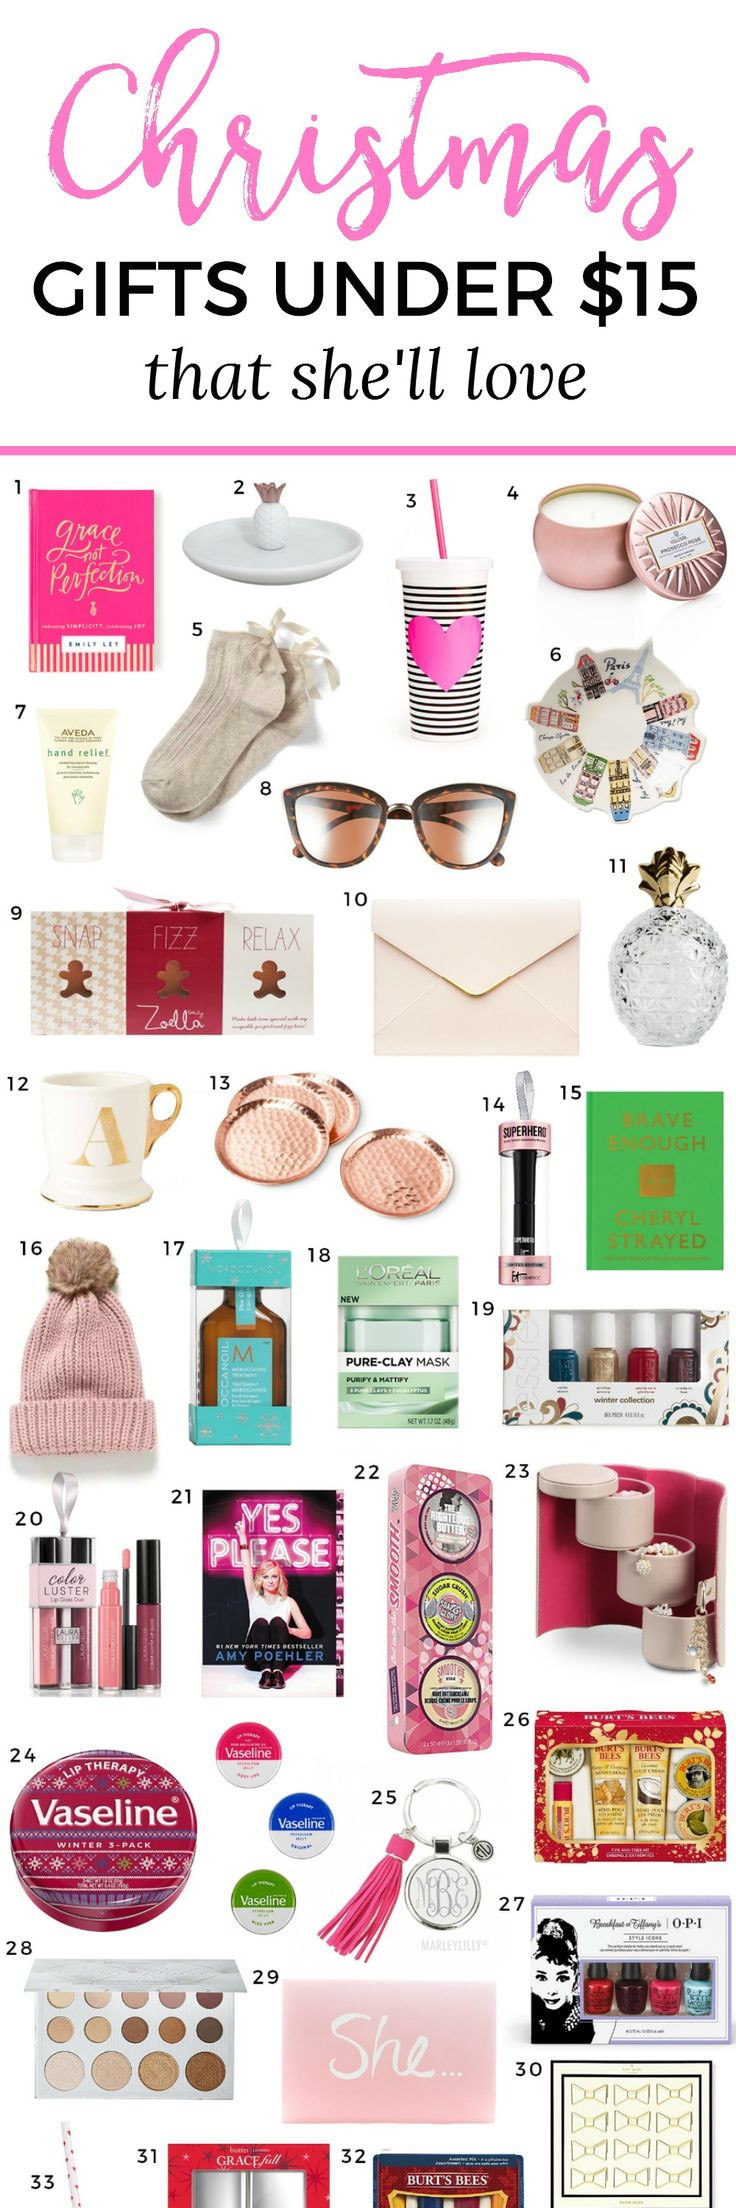 Best 25+ Christmas gift ideas ideas on Pinterest | Mother ...